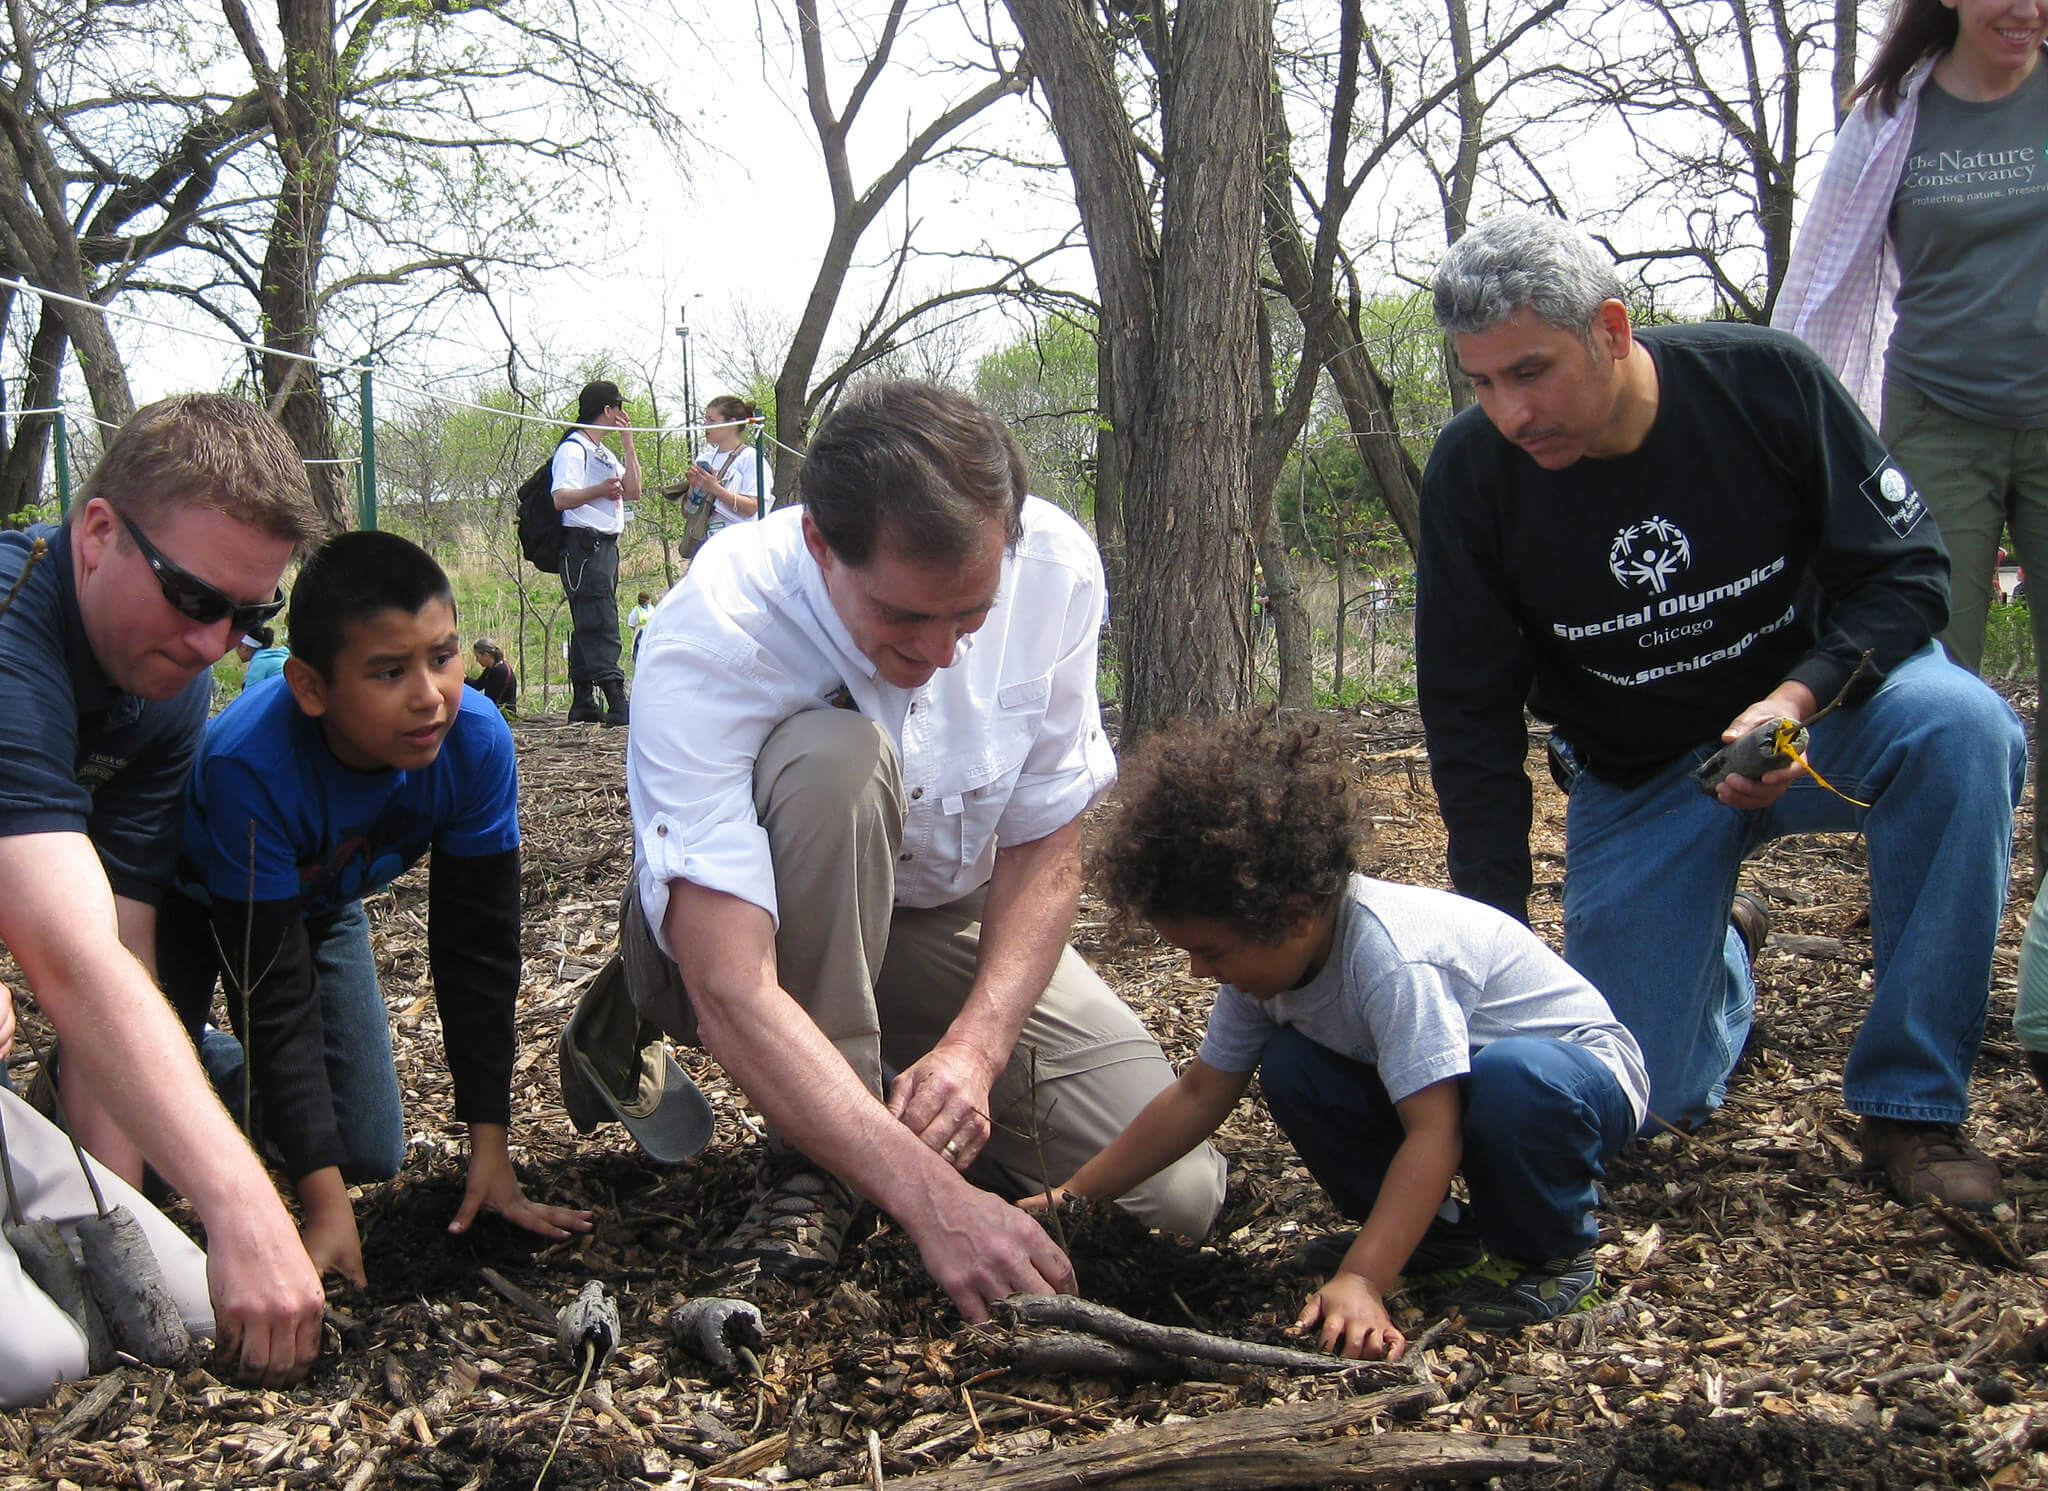 Adults helping kids plant trees. Governor Evers has pledged that Wisconsin will plant millions of trees to fight climate change, and preserve existing forests using the Knowles-Nelson Stewardship Program.